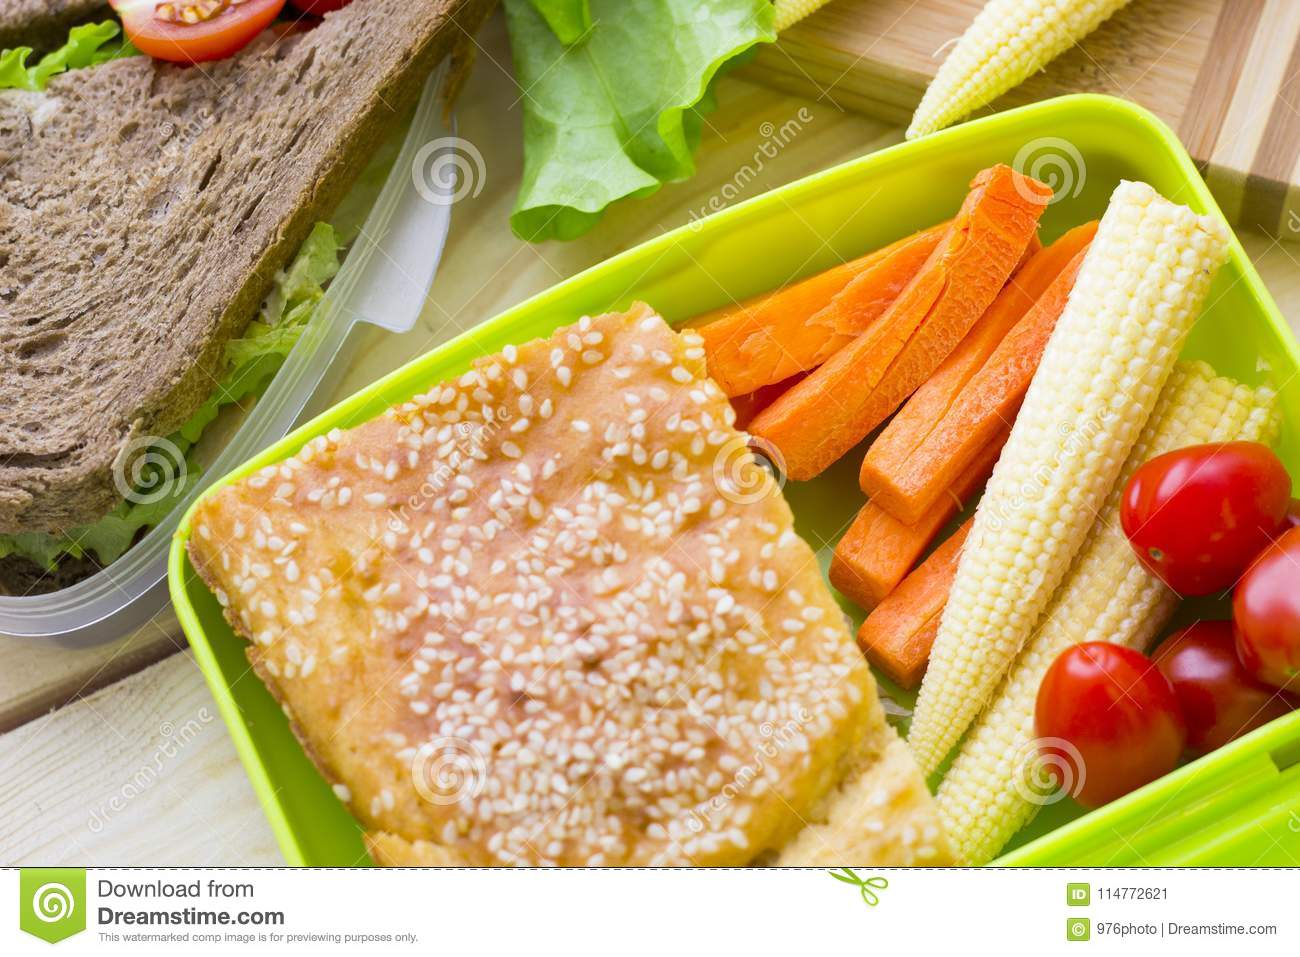 Lunch In A Box Healthy Lunch In A Box Stock Image Image Of Cuisine 114772621